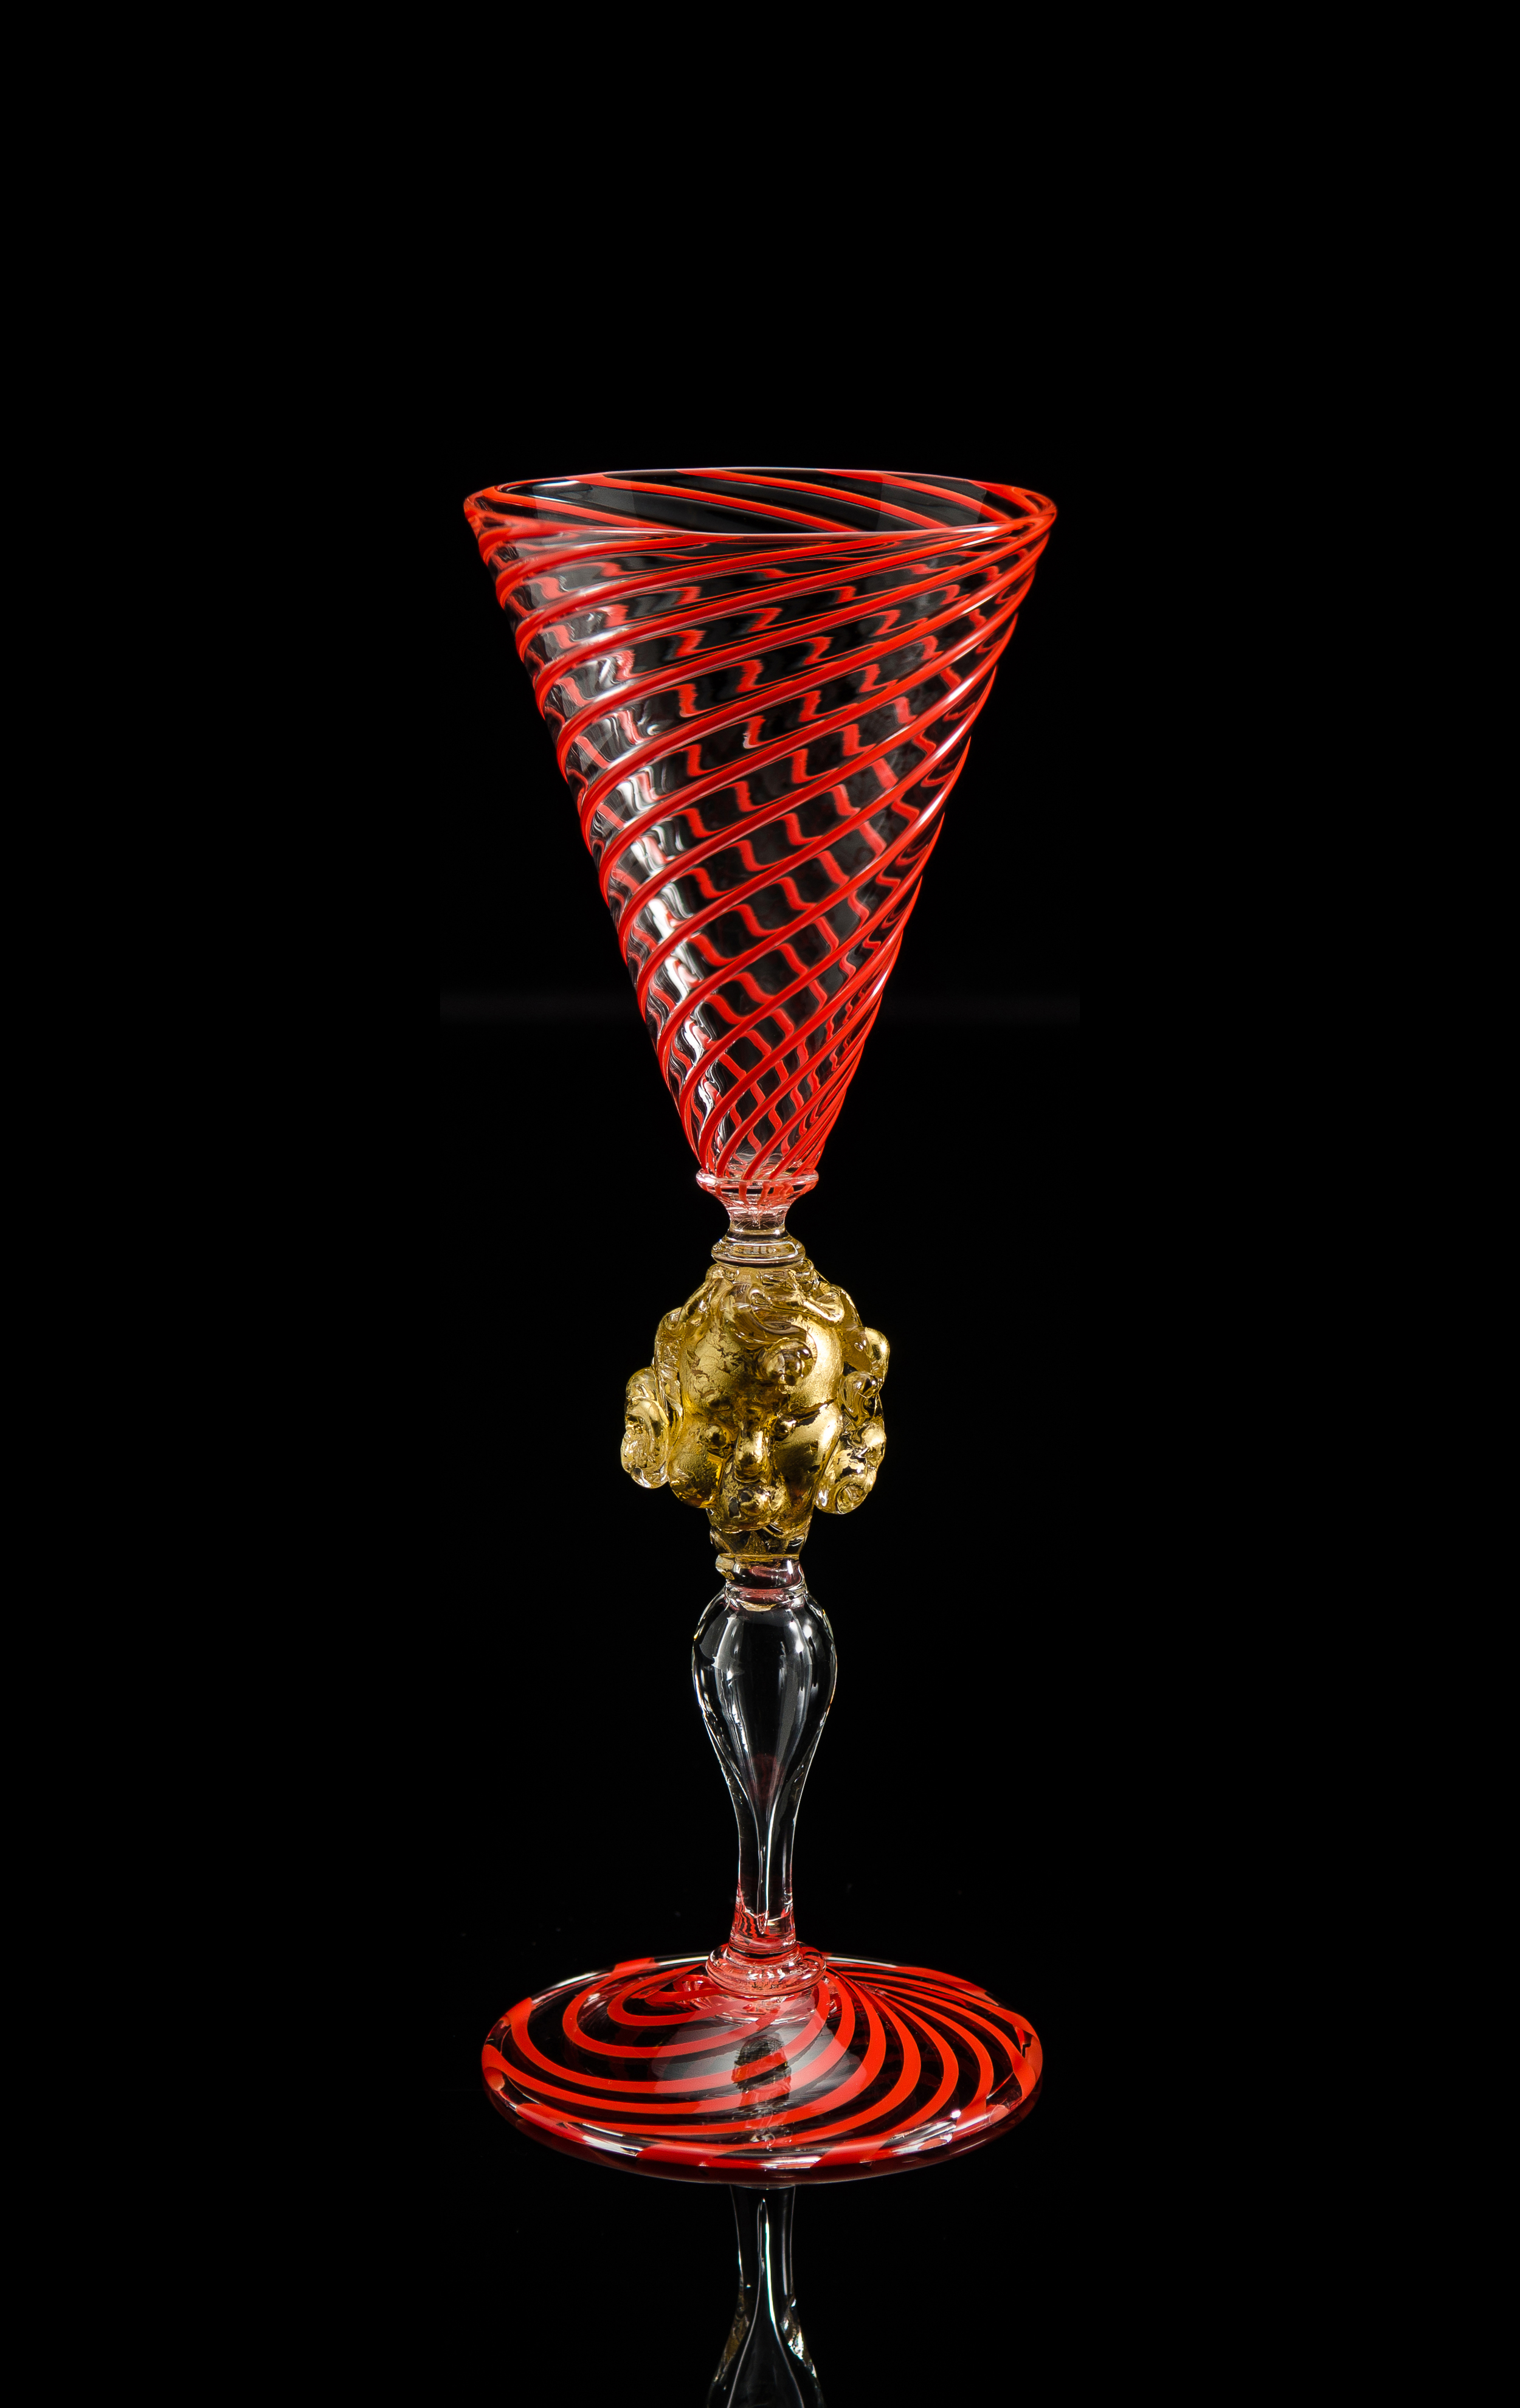 Lino Tagliapietra,  Goblet  (1991-1994, glass and gold leaf, 9 1/4 x 3 1/4 x 3 1/4 inches), LT.81